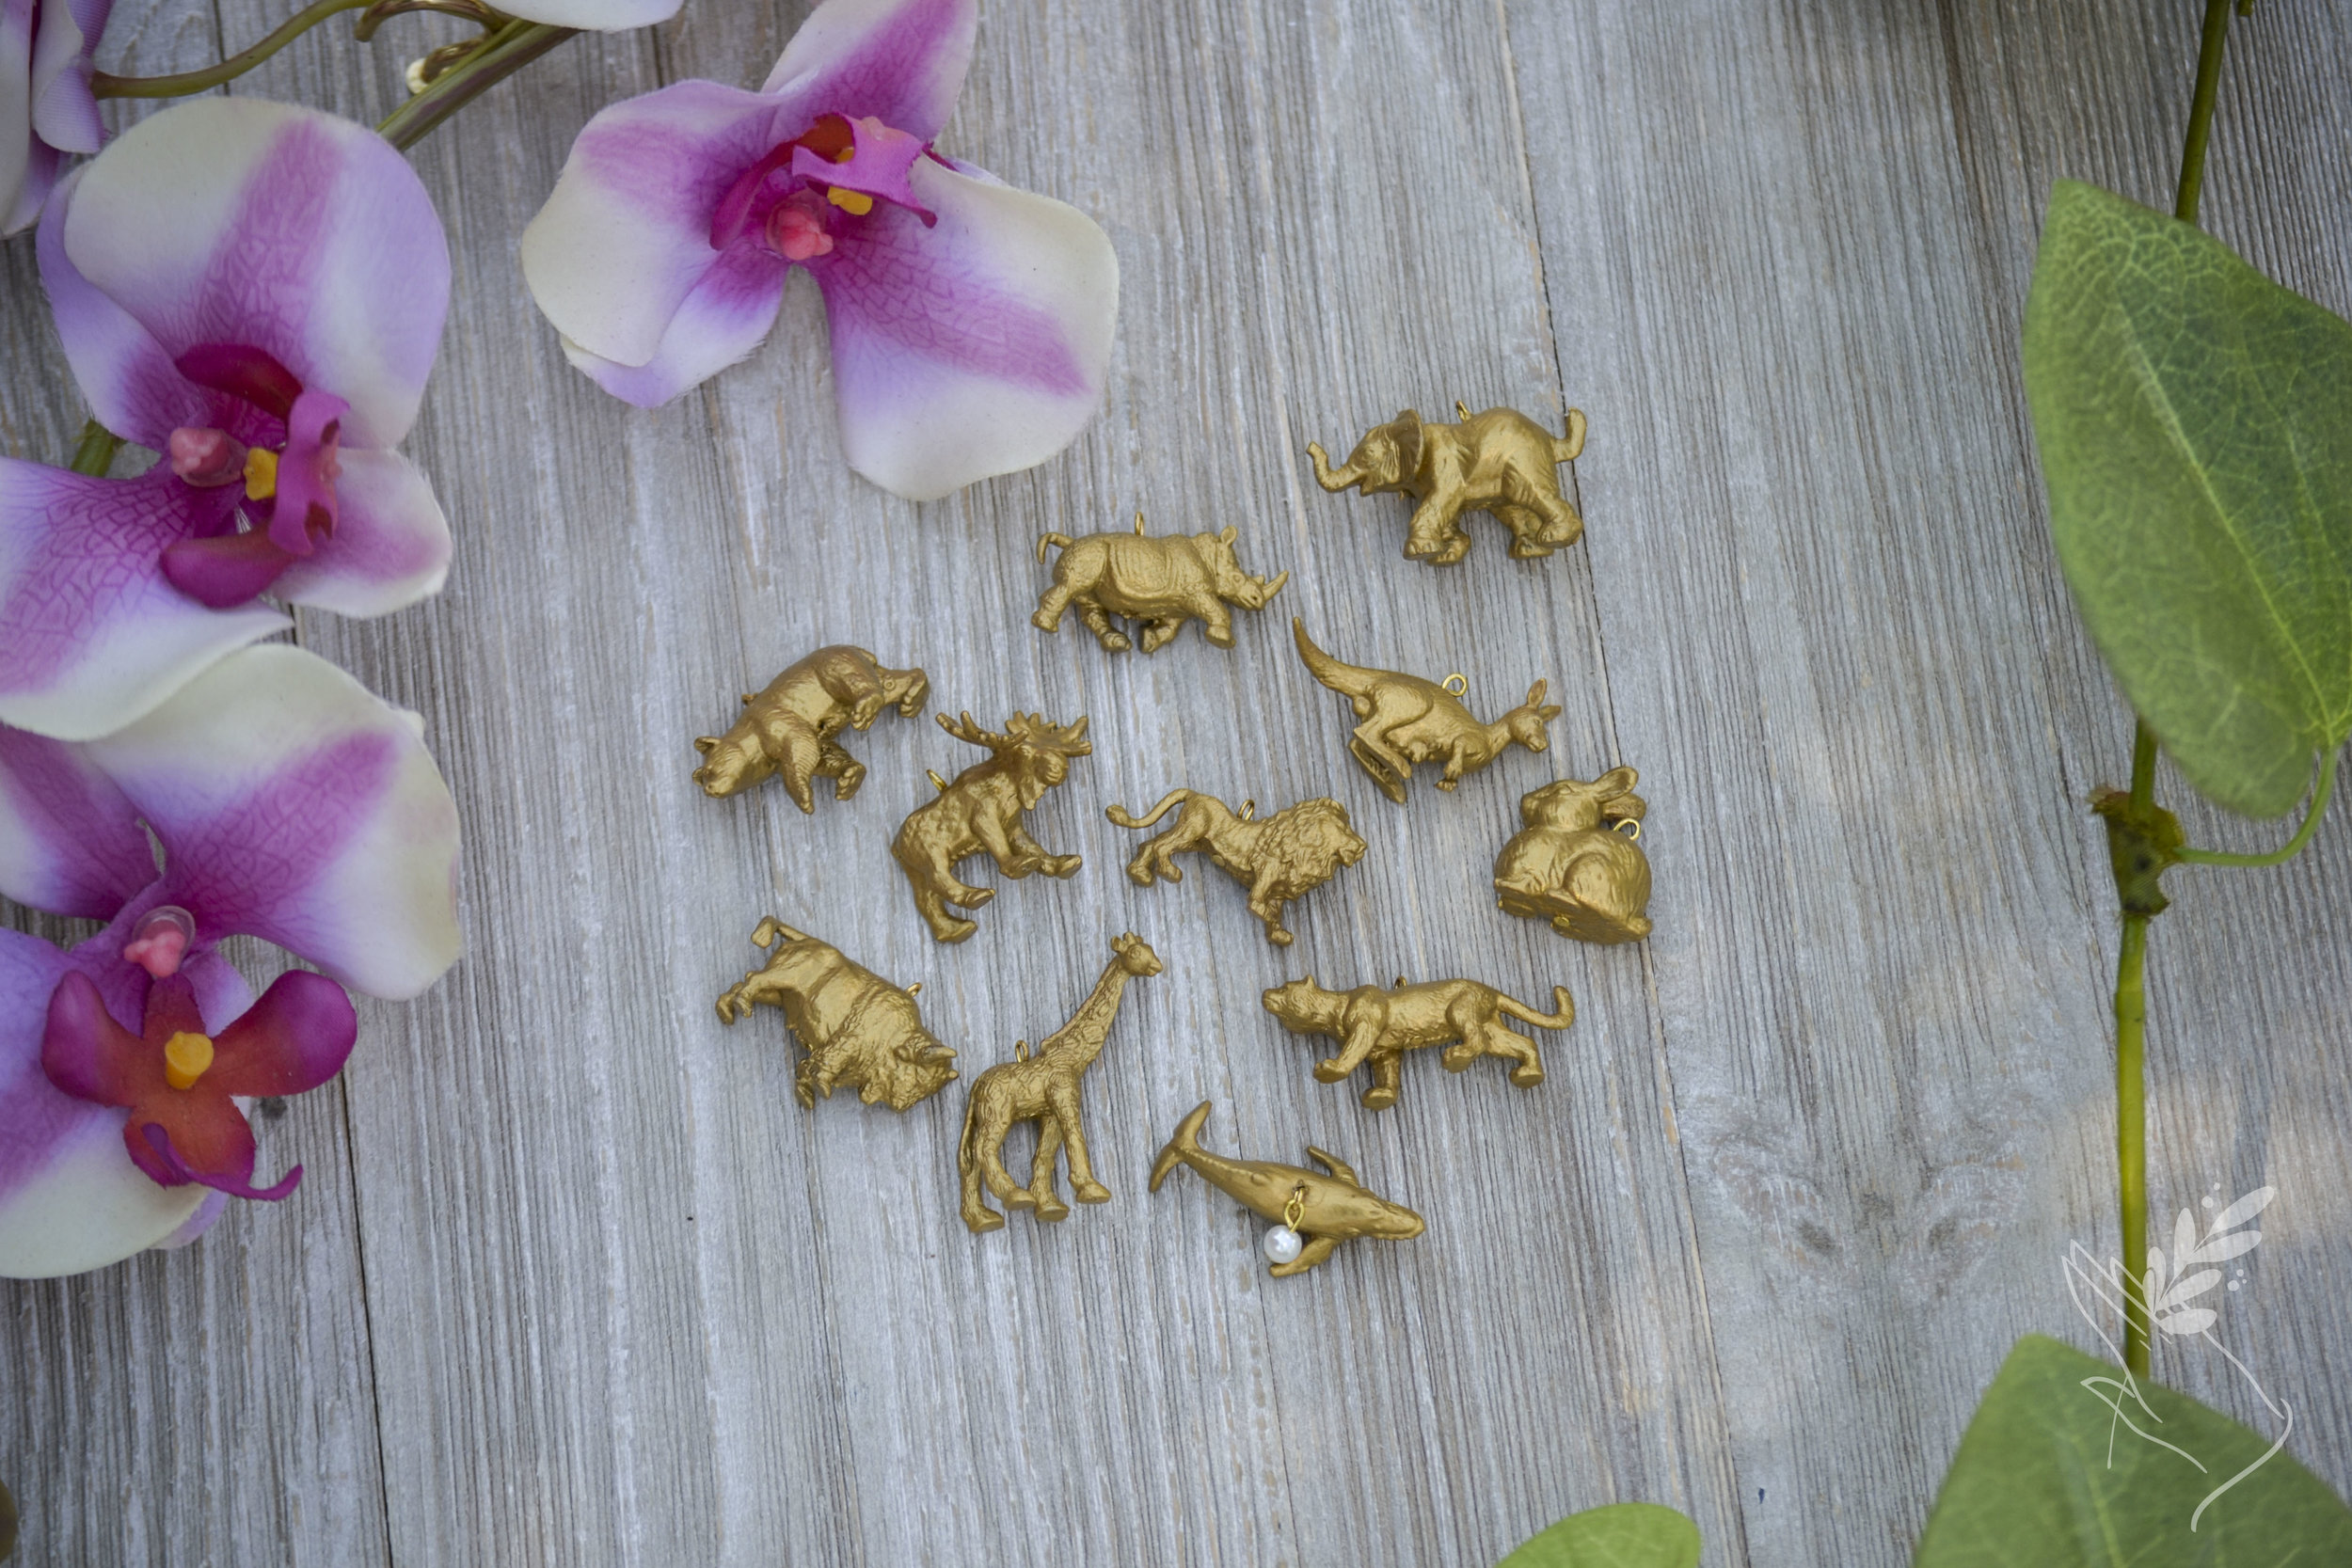 Golden Animal Charm Necklace